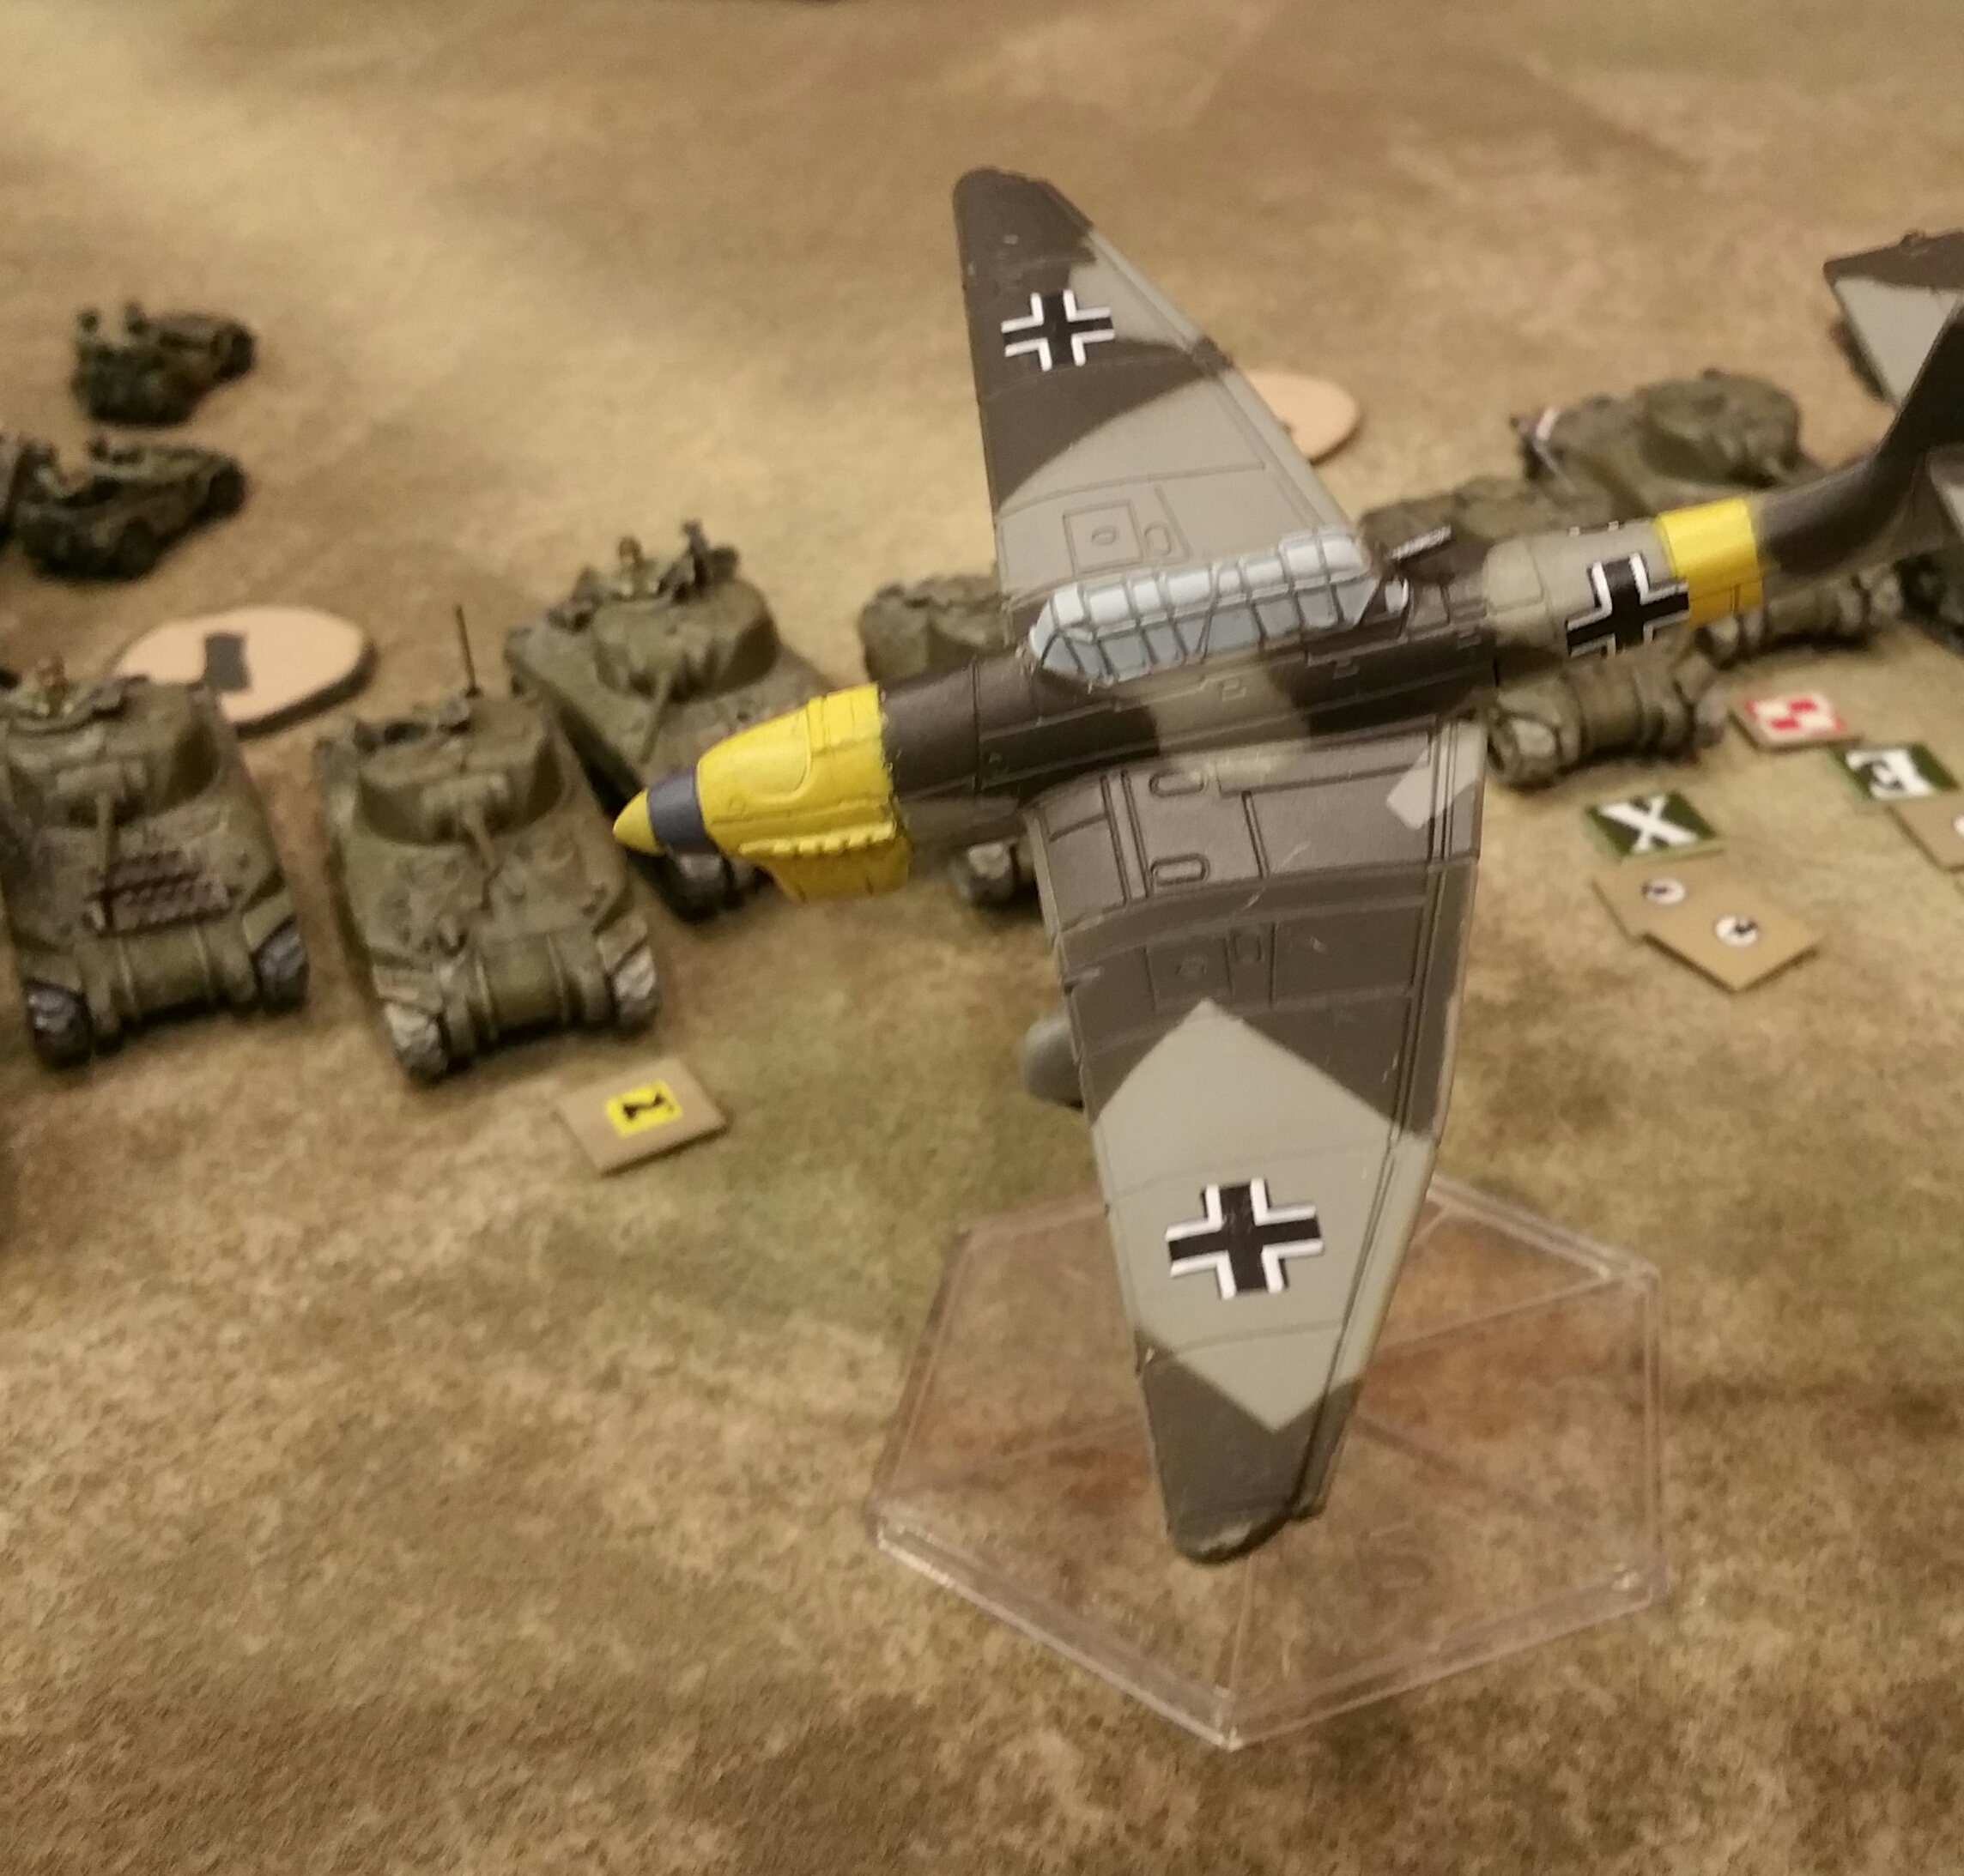 belated stuka strike